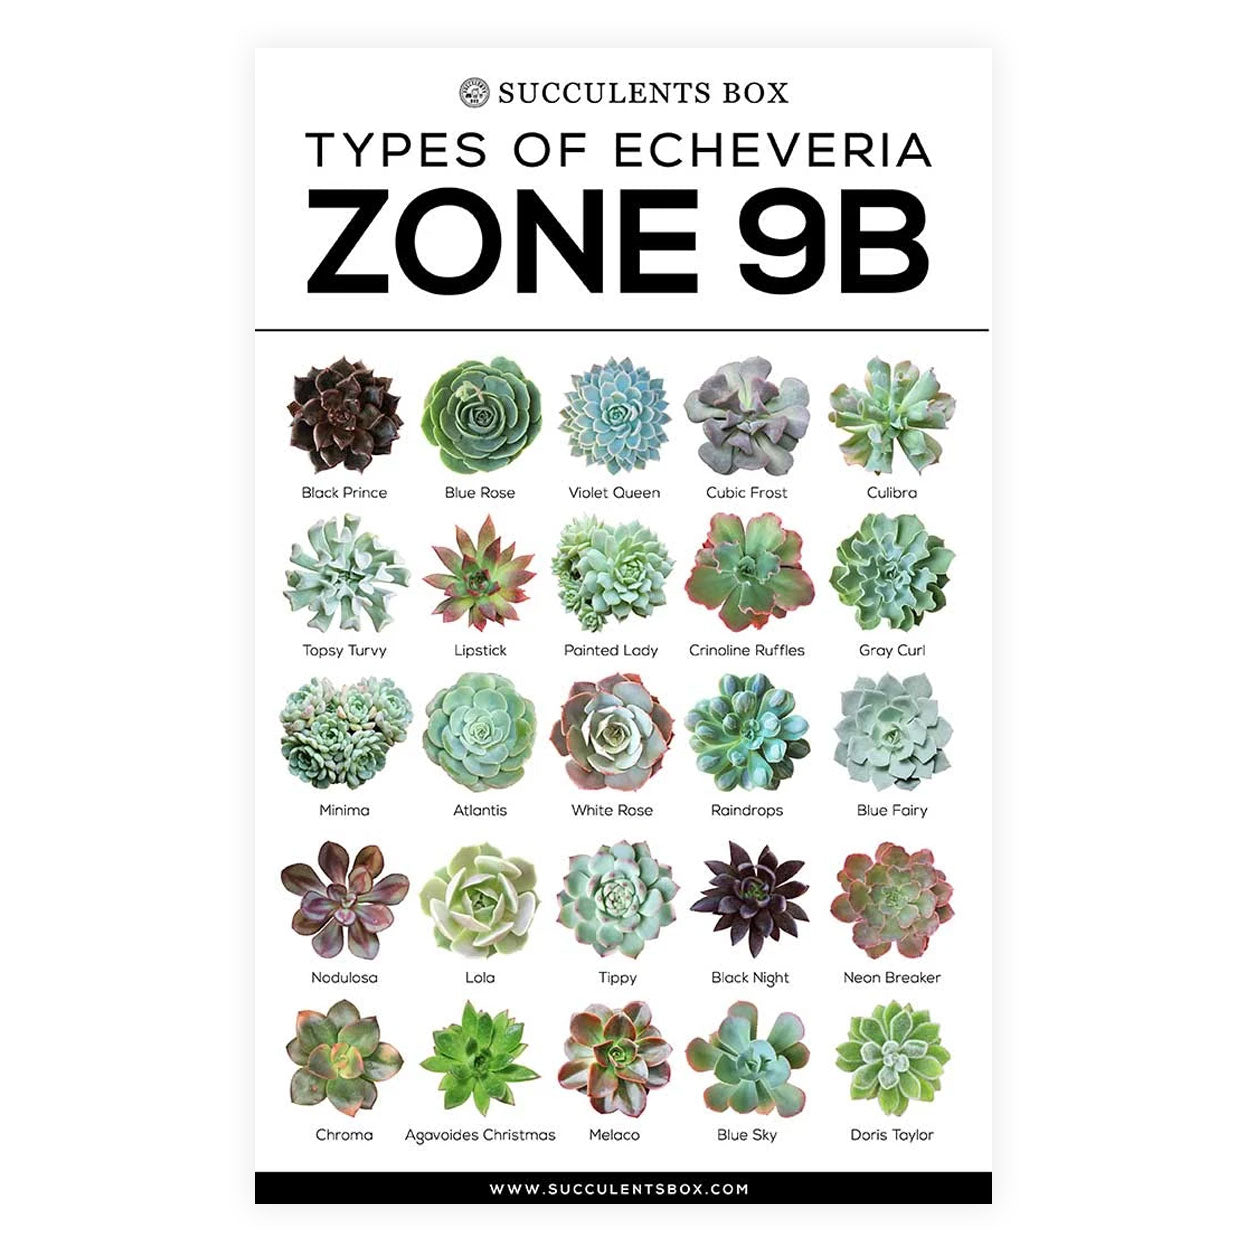 choosing succulent for zone, Succulent designs Zone, Succulents Hardiness Zone, best succulent image, collection of Printable Succulents Art, digital printable succulent, Printable Arts: Types of Succulent Zones for sale, Succulent Printable, succulent printable selection, succulent decor idea, succulent gift, succulent art